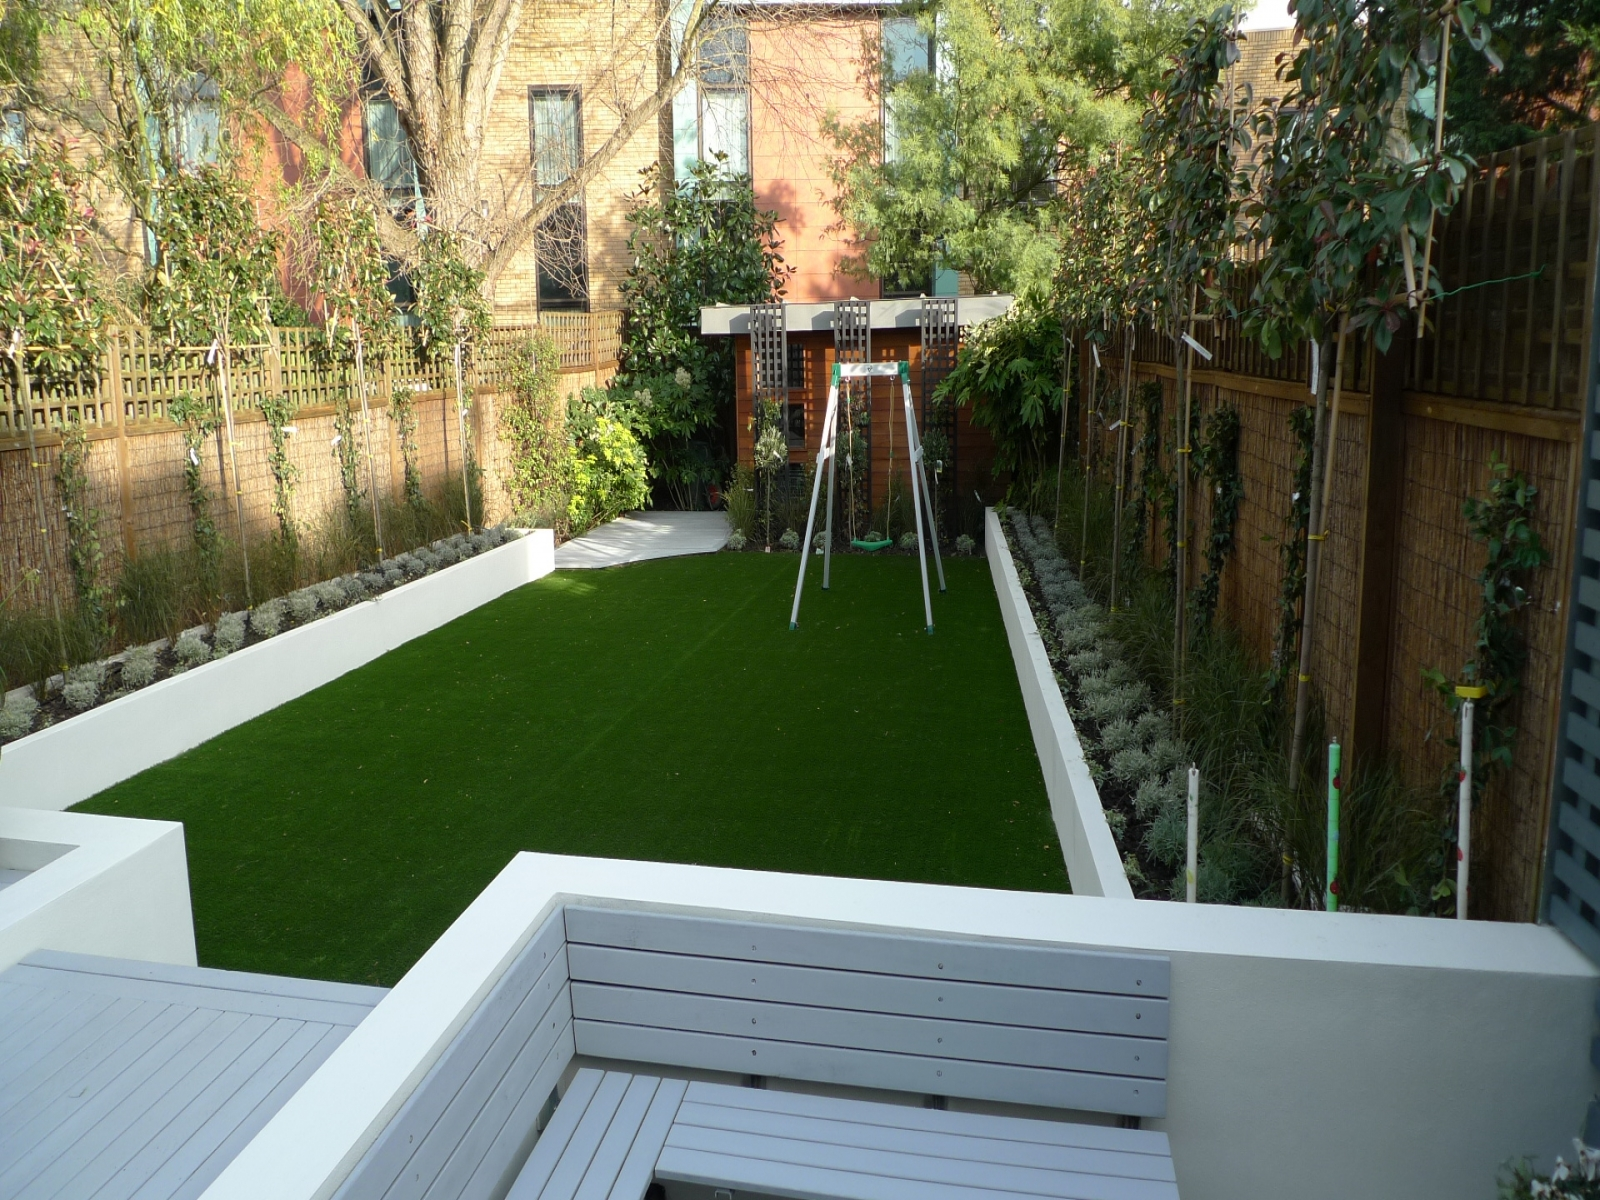 garden design ideas london photo - 7